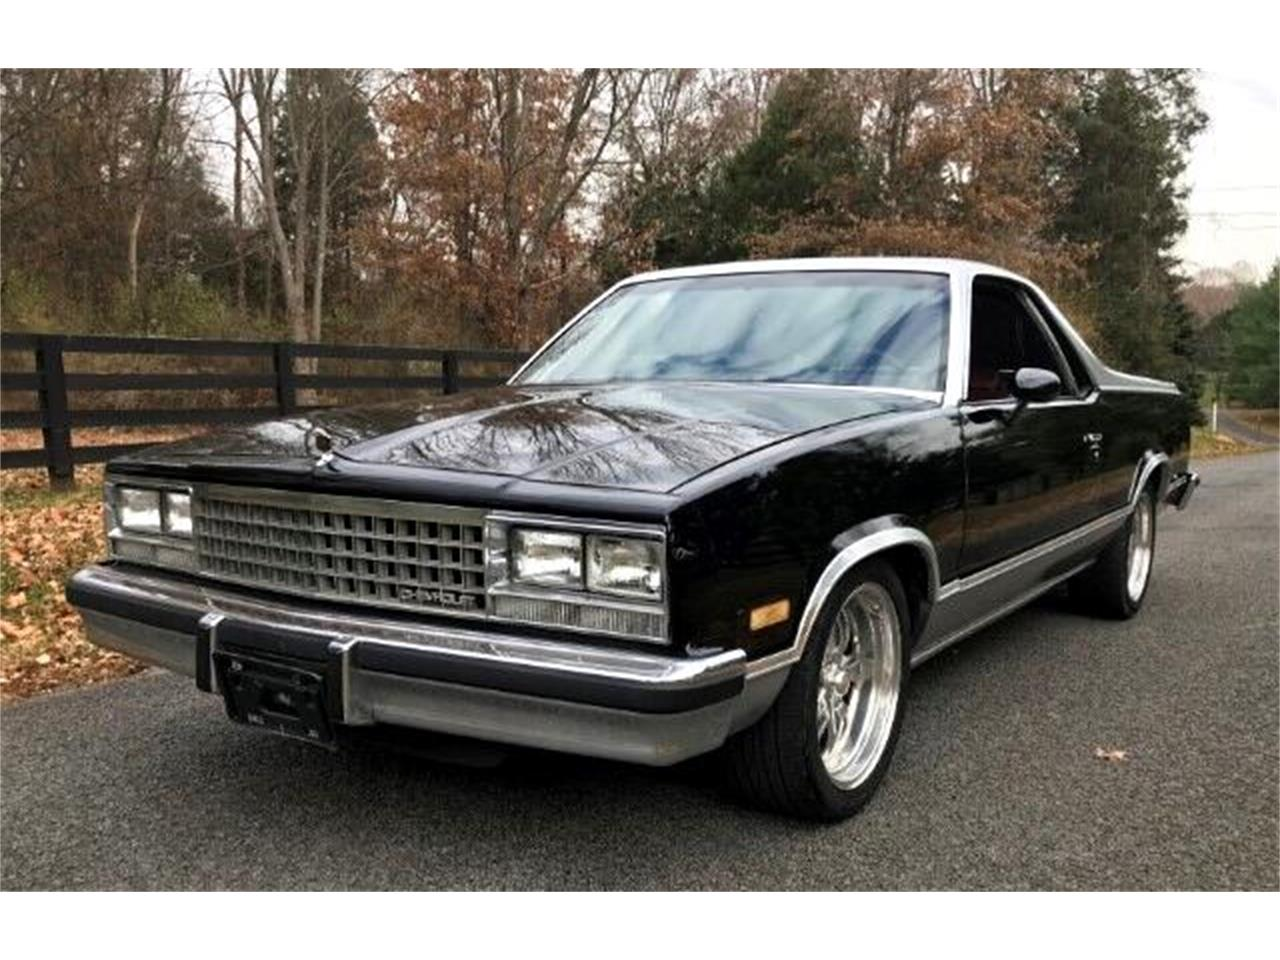 1984 Chevrolet El Camino (CC-1411553) for sale in Harpers Ferry, West Virginia